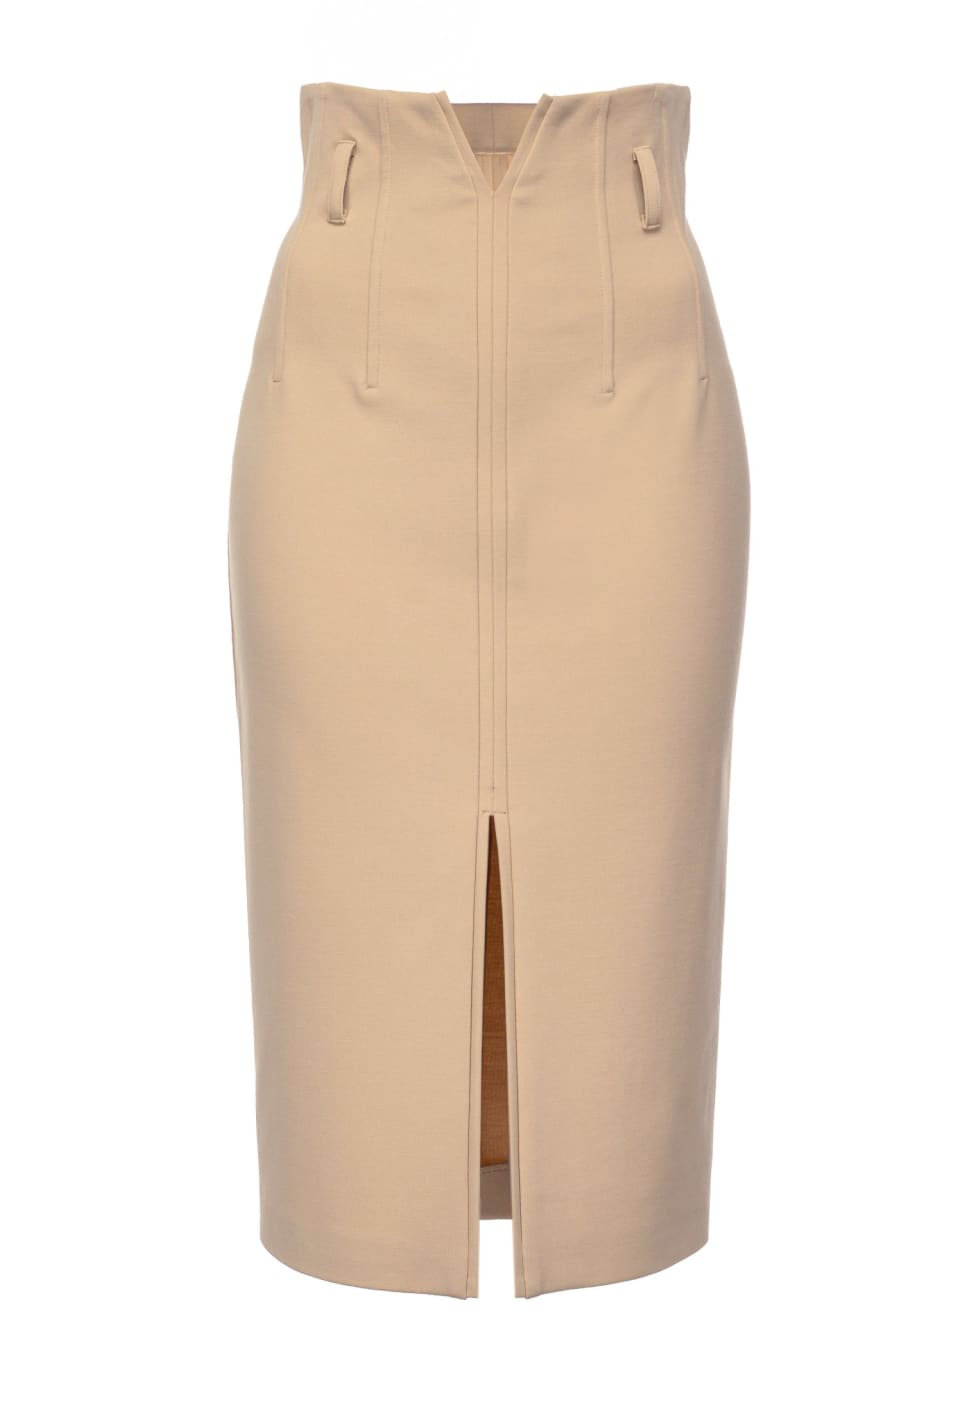 Midi-length skirt with slit - Pinko